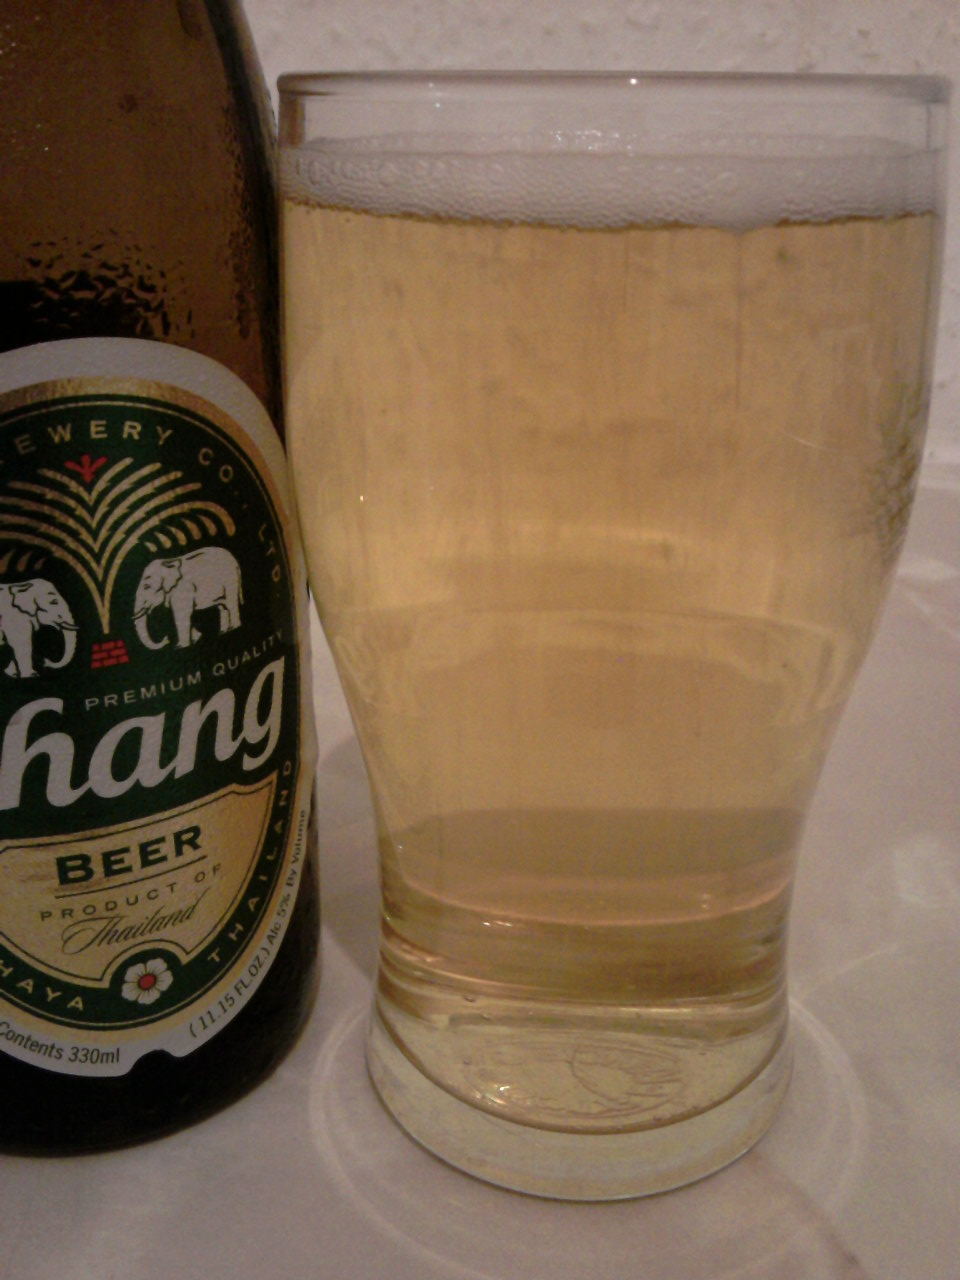 Chang Beer poured into a glass